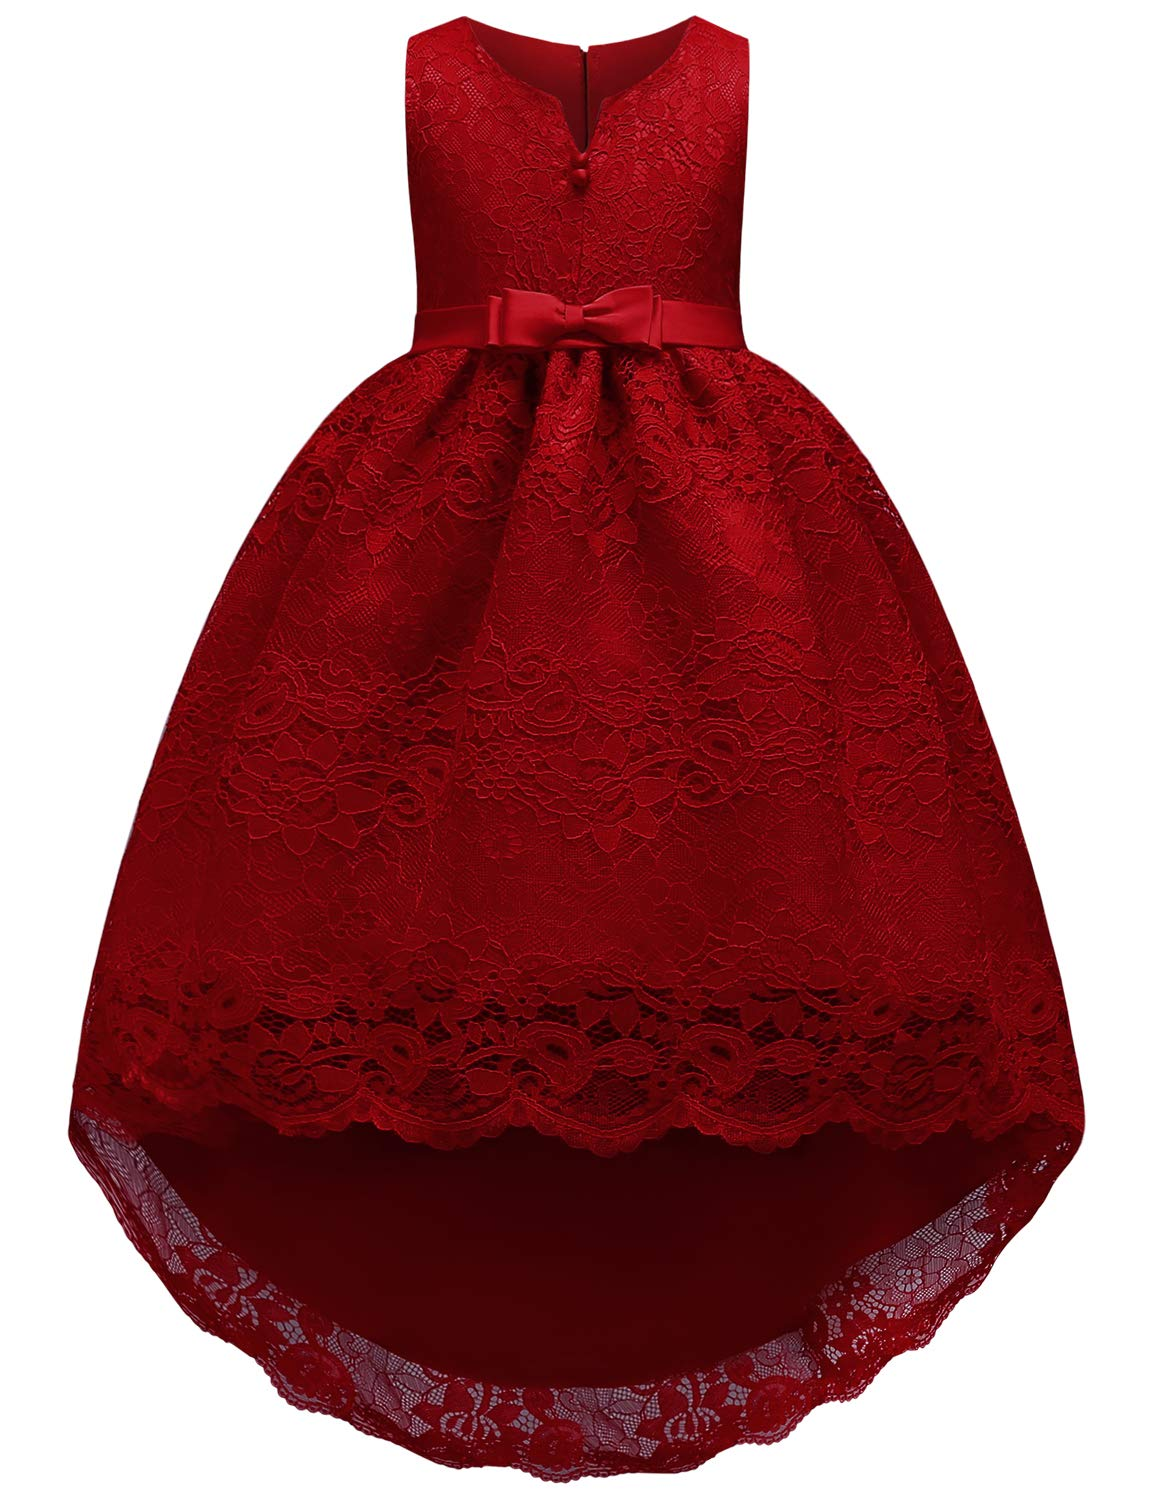 7c9a7dedd JOYMOM Little Girls Dresses,Kids Cut V Neckline Sleeveless Lace Appliques  Prom Gowns Baby Girl Empire Waist Ribbon Tie Hidden Zipper Dress Children  Daily ...